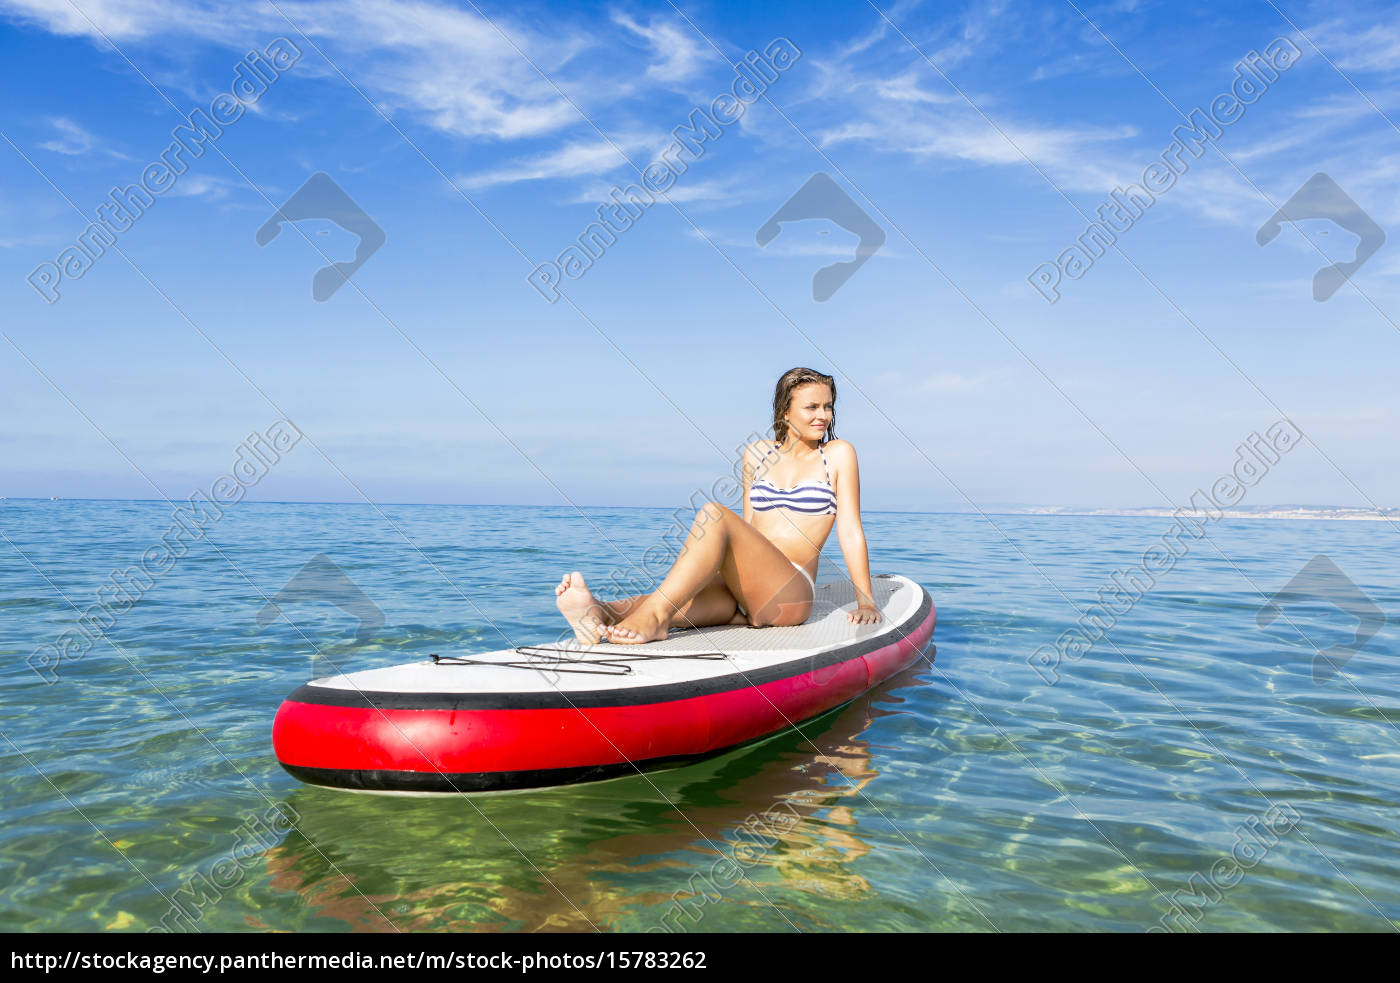 woman, practicing, paddle - 15783262